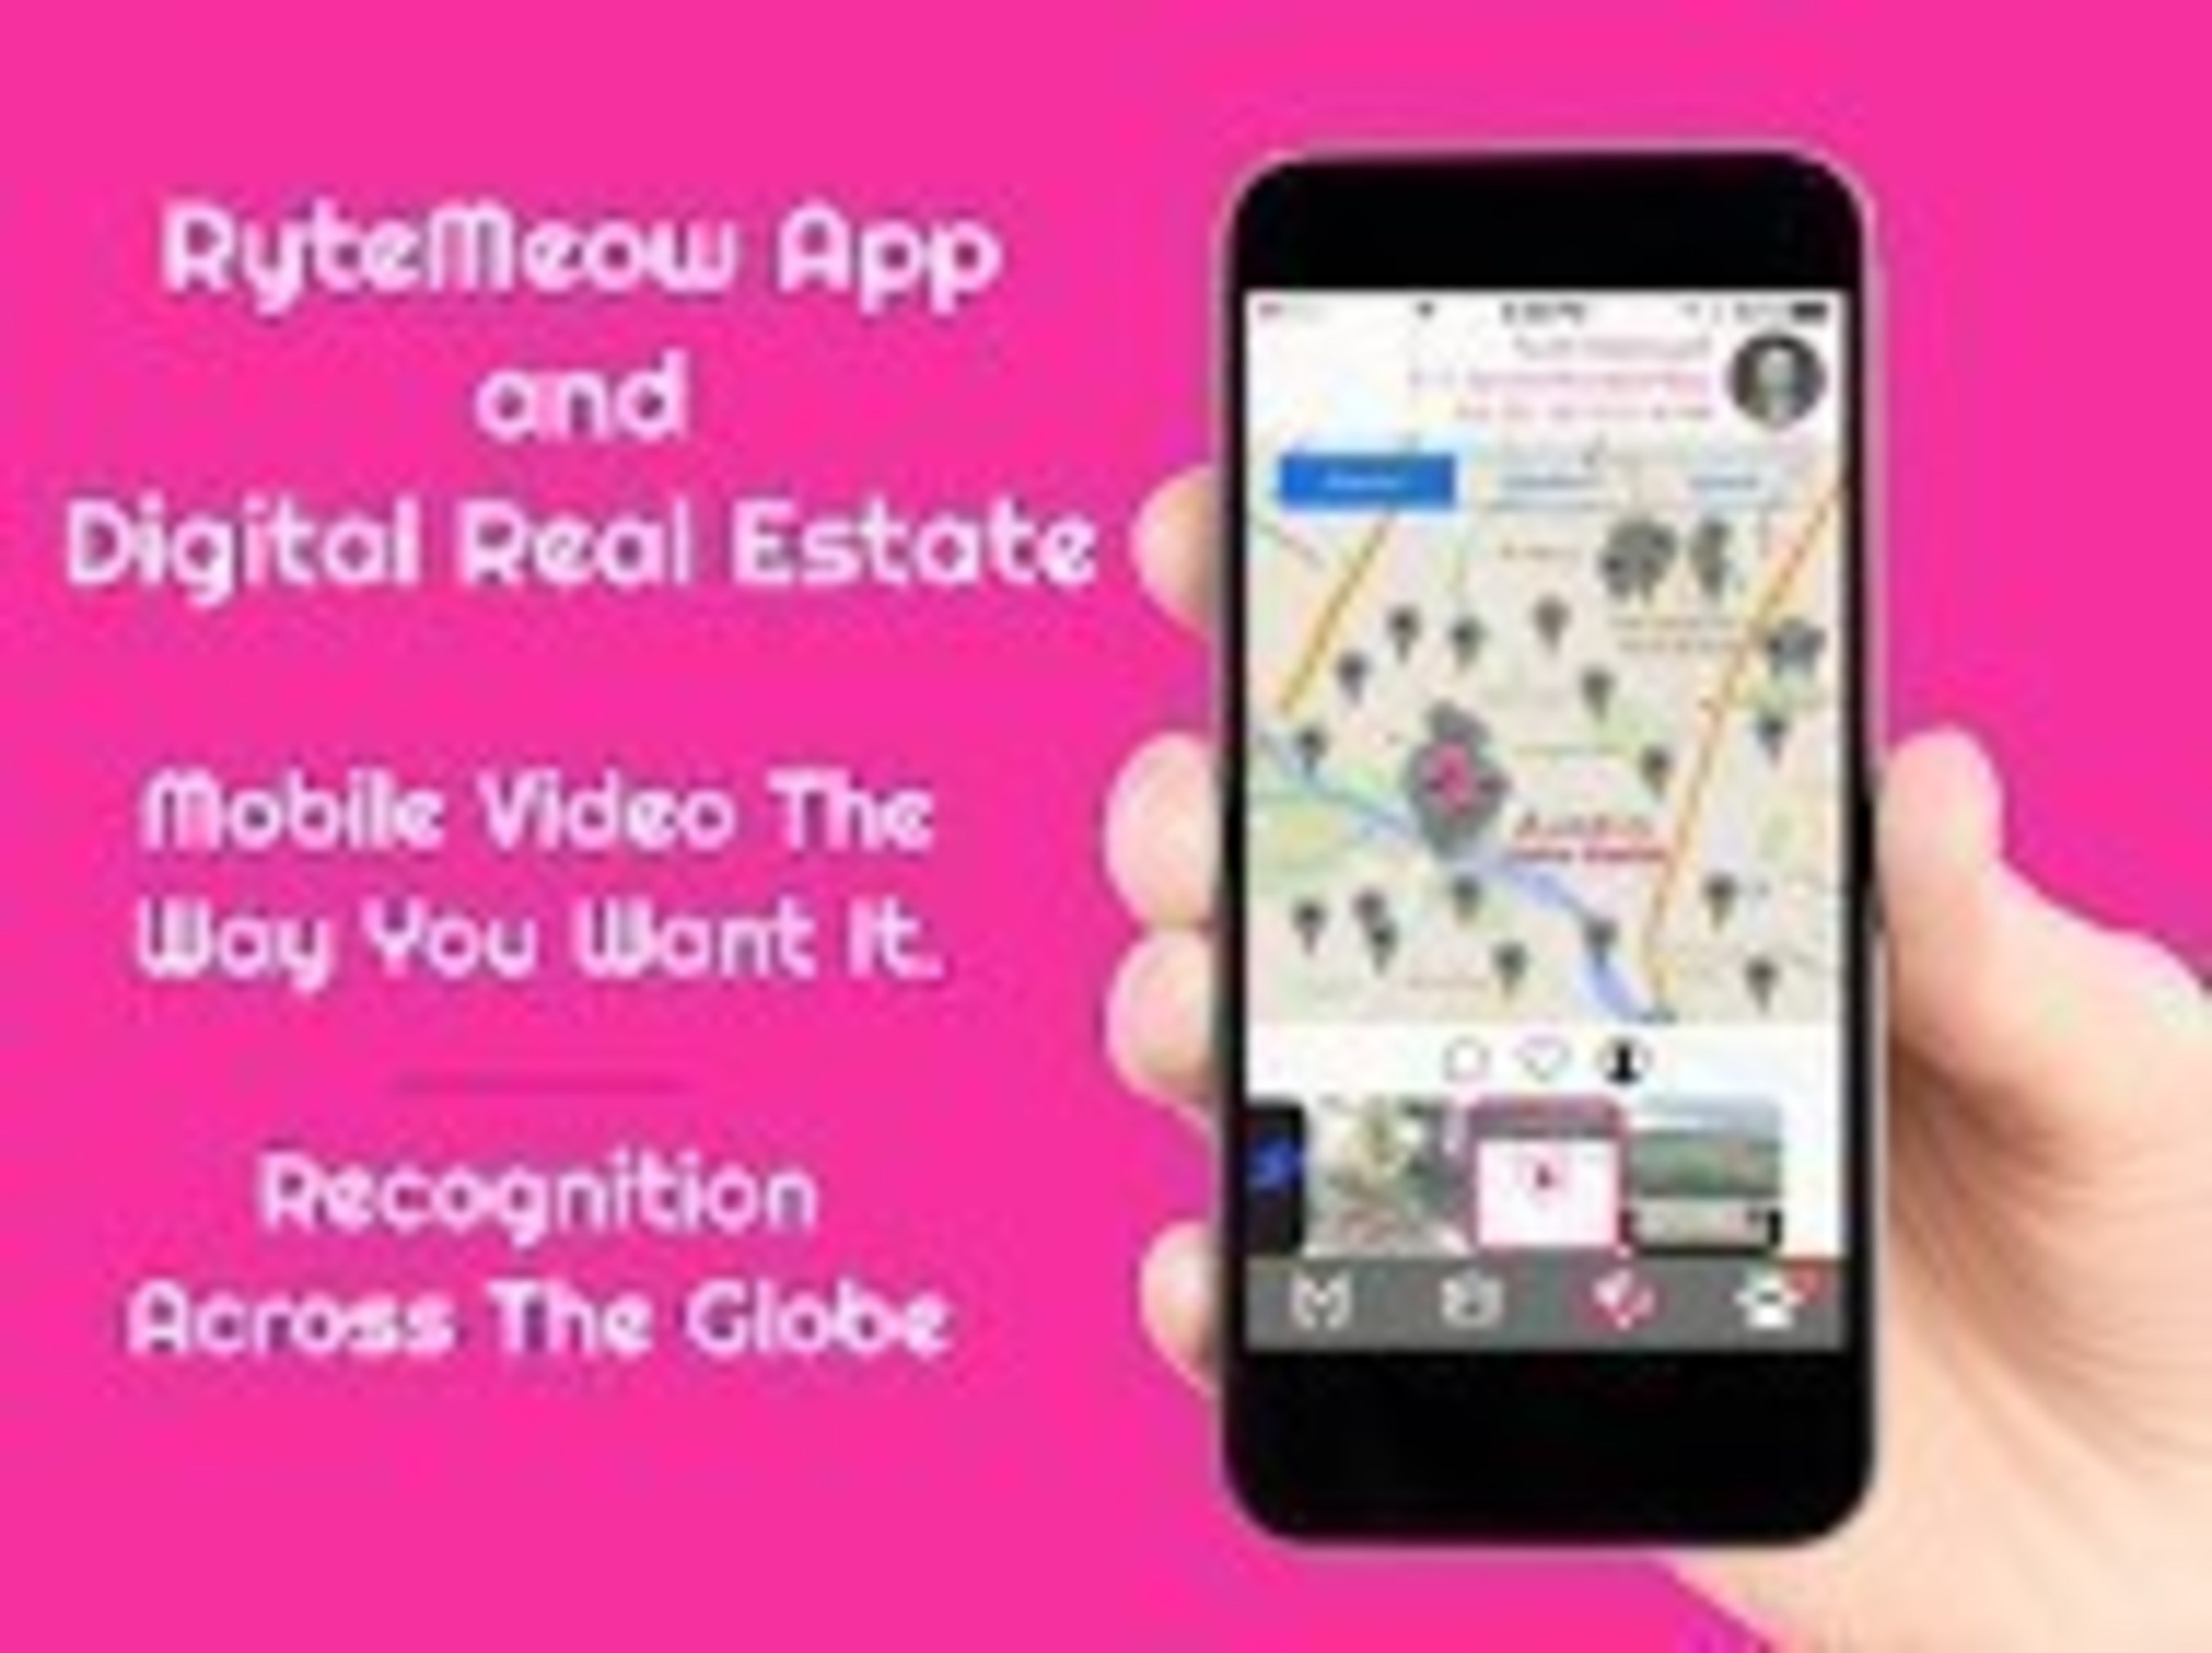 RyteMeow, Inc. Is Offering Digital Real Estate and Celebrity Dinner in Kickstarter Campaign